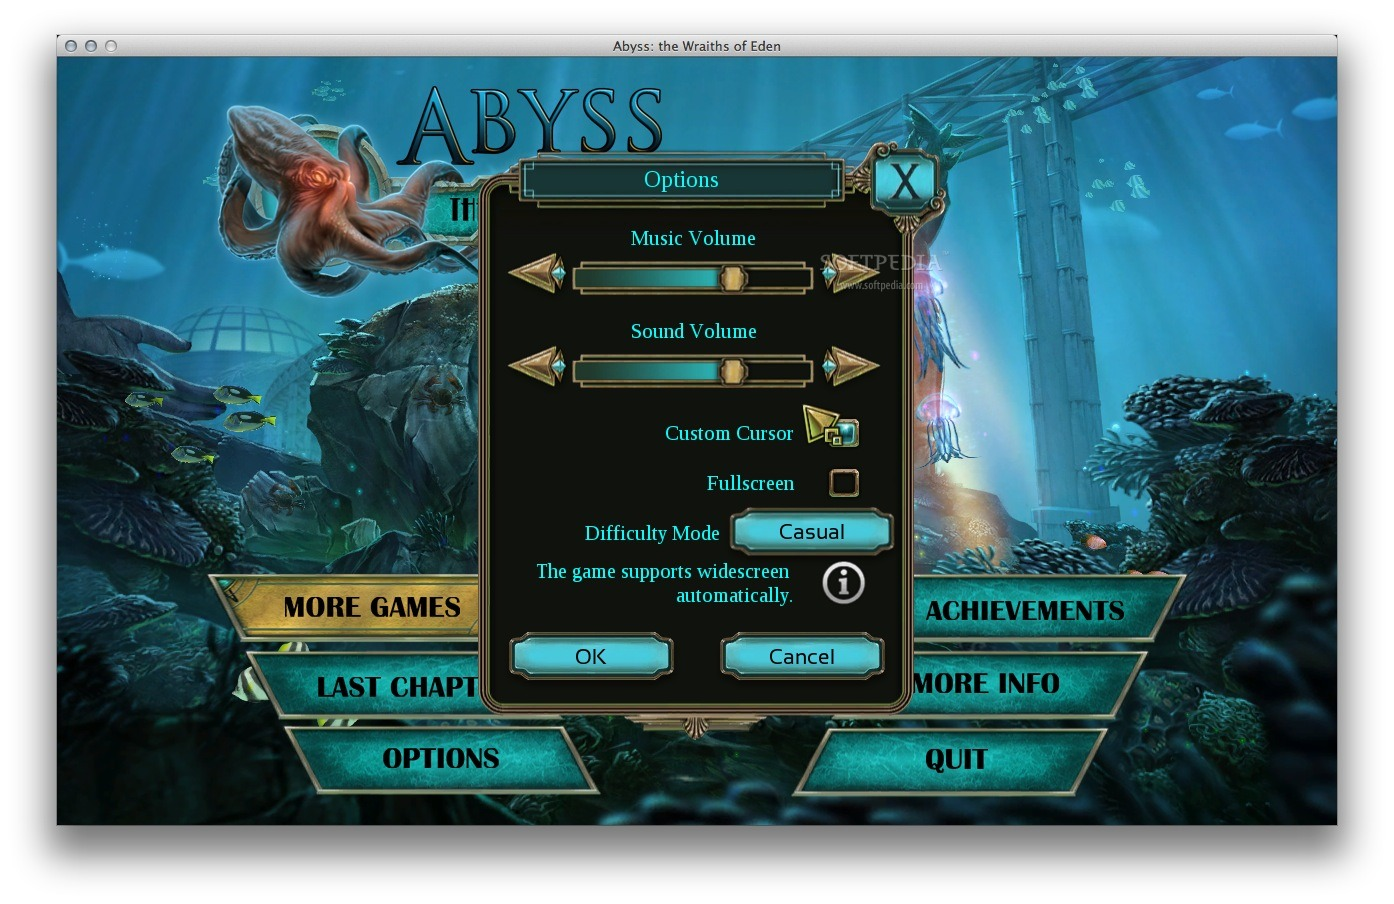 Abyss: The Wraiths of Eden screenshot 4 - From the 'Options' panel you can choose to play the game in full screen mode.